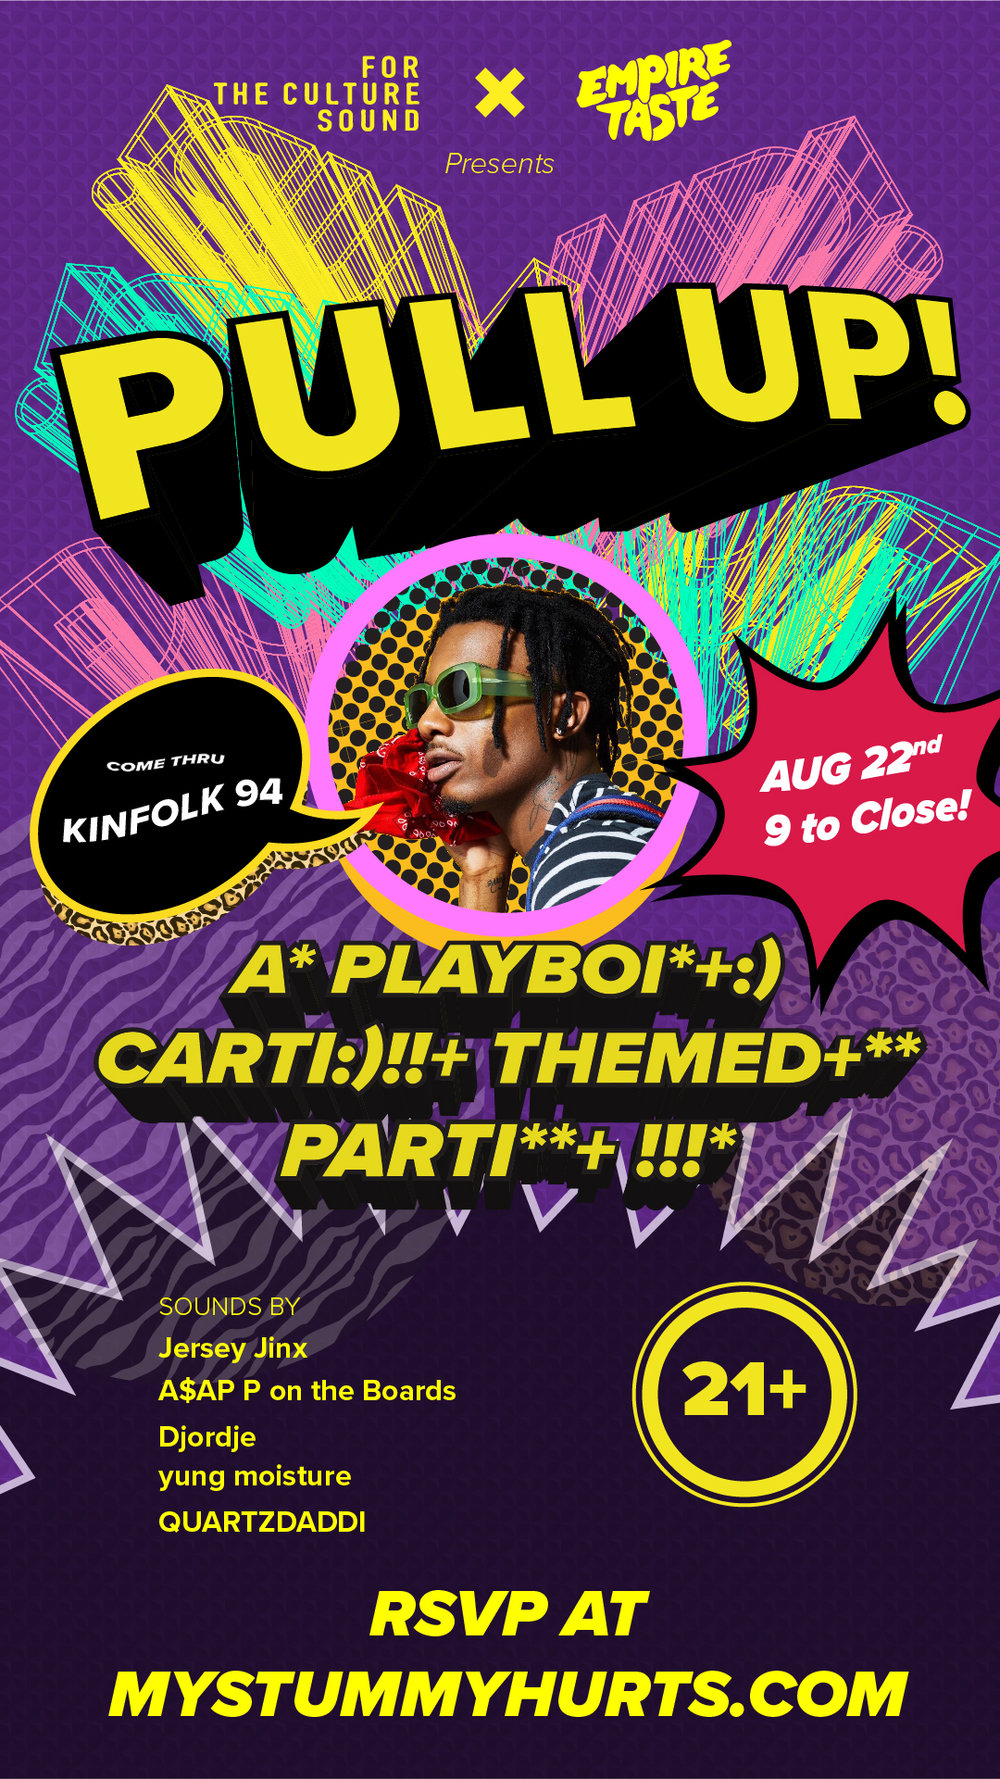 Pull Up! -  We know you've been waiting for a Long Time but the Playboi*+:) Carti:)!!* Parti**+:) you've been looking for is finally here.Empire Taste & FTC Sound are on some Other Shit with this one so Pull Up! to Kinfolk 94 on 8/22 for an immersive installation and gallery inspired by the King of this mumble shit, Ca$h Carti.Soundtrack laid down by Jersey Jinx, A$AP P on the Boards, Djordje, yung moisture and QUARTZDADDI.Gallery curated by @andreaangarica and @domingotutu.Cop a raffle ticket upon entry for a chance to win a special Playboi Carti themed prize.Don't miss this, even if your stummy hurt. Free RSVP for the Brokebois and Flexers alike.Suffering from clout deficiency? Free clout goggles to the first 40 RSVPs so dothatshit!